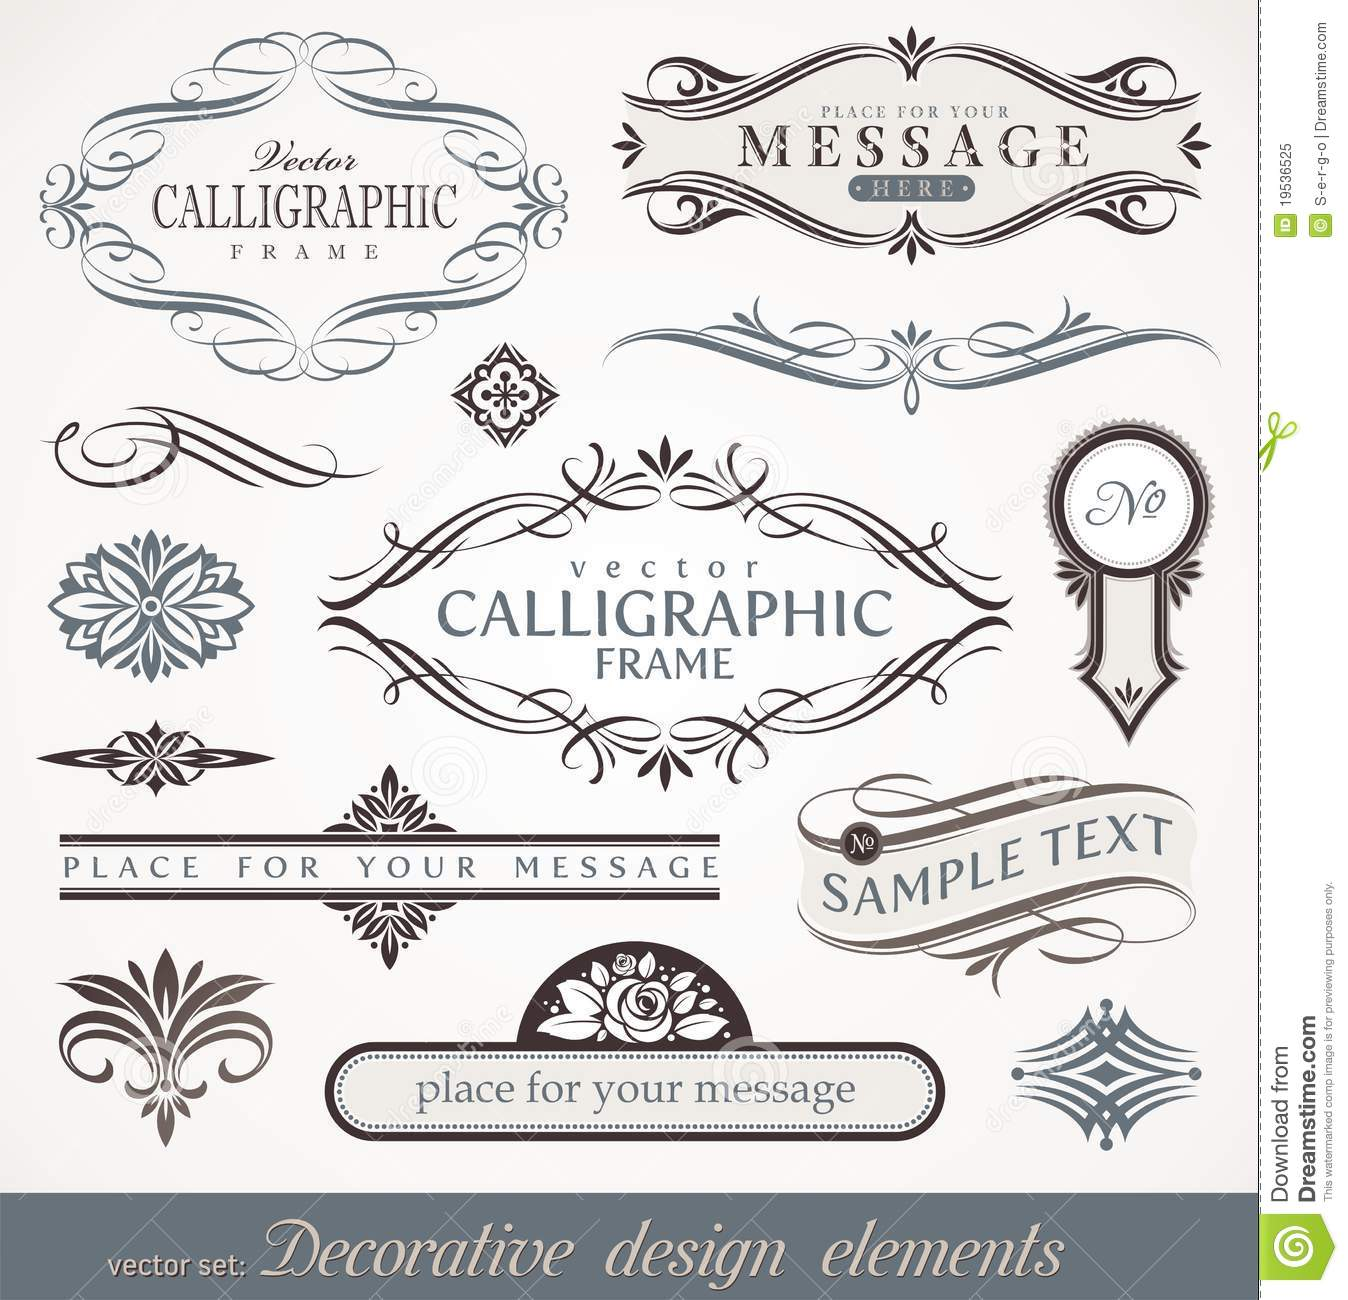 Elements By Design : Calligraphic design elements page decor stock vector